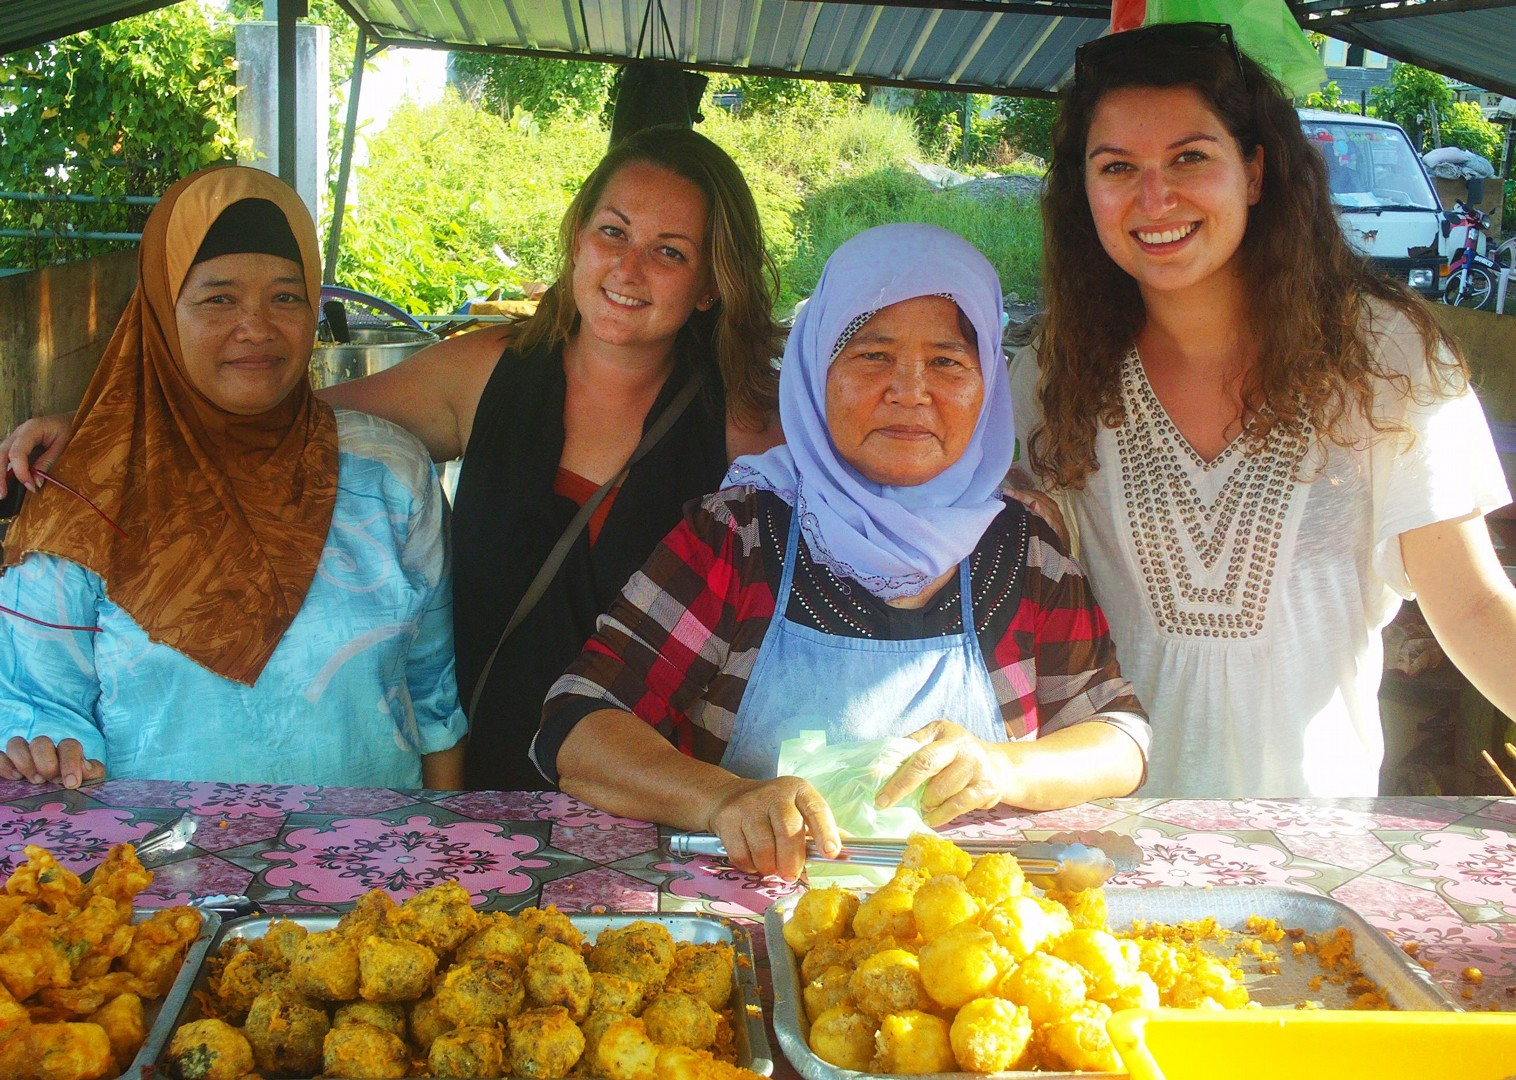 local-food-borneo-stall-in-market-holiday-saddle-skedaddle.jpg - NEW! Borneo - Secret Sarawak - Cycling Adventures